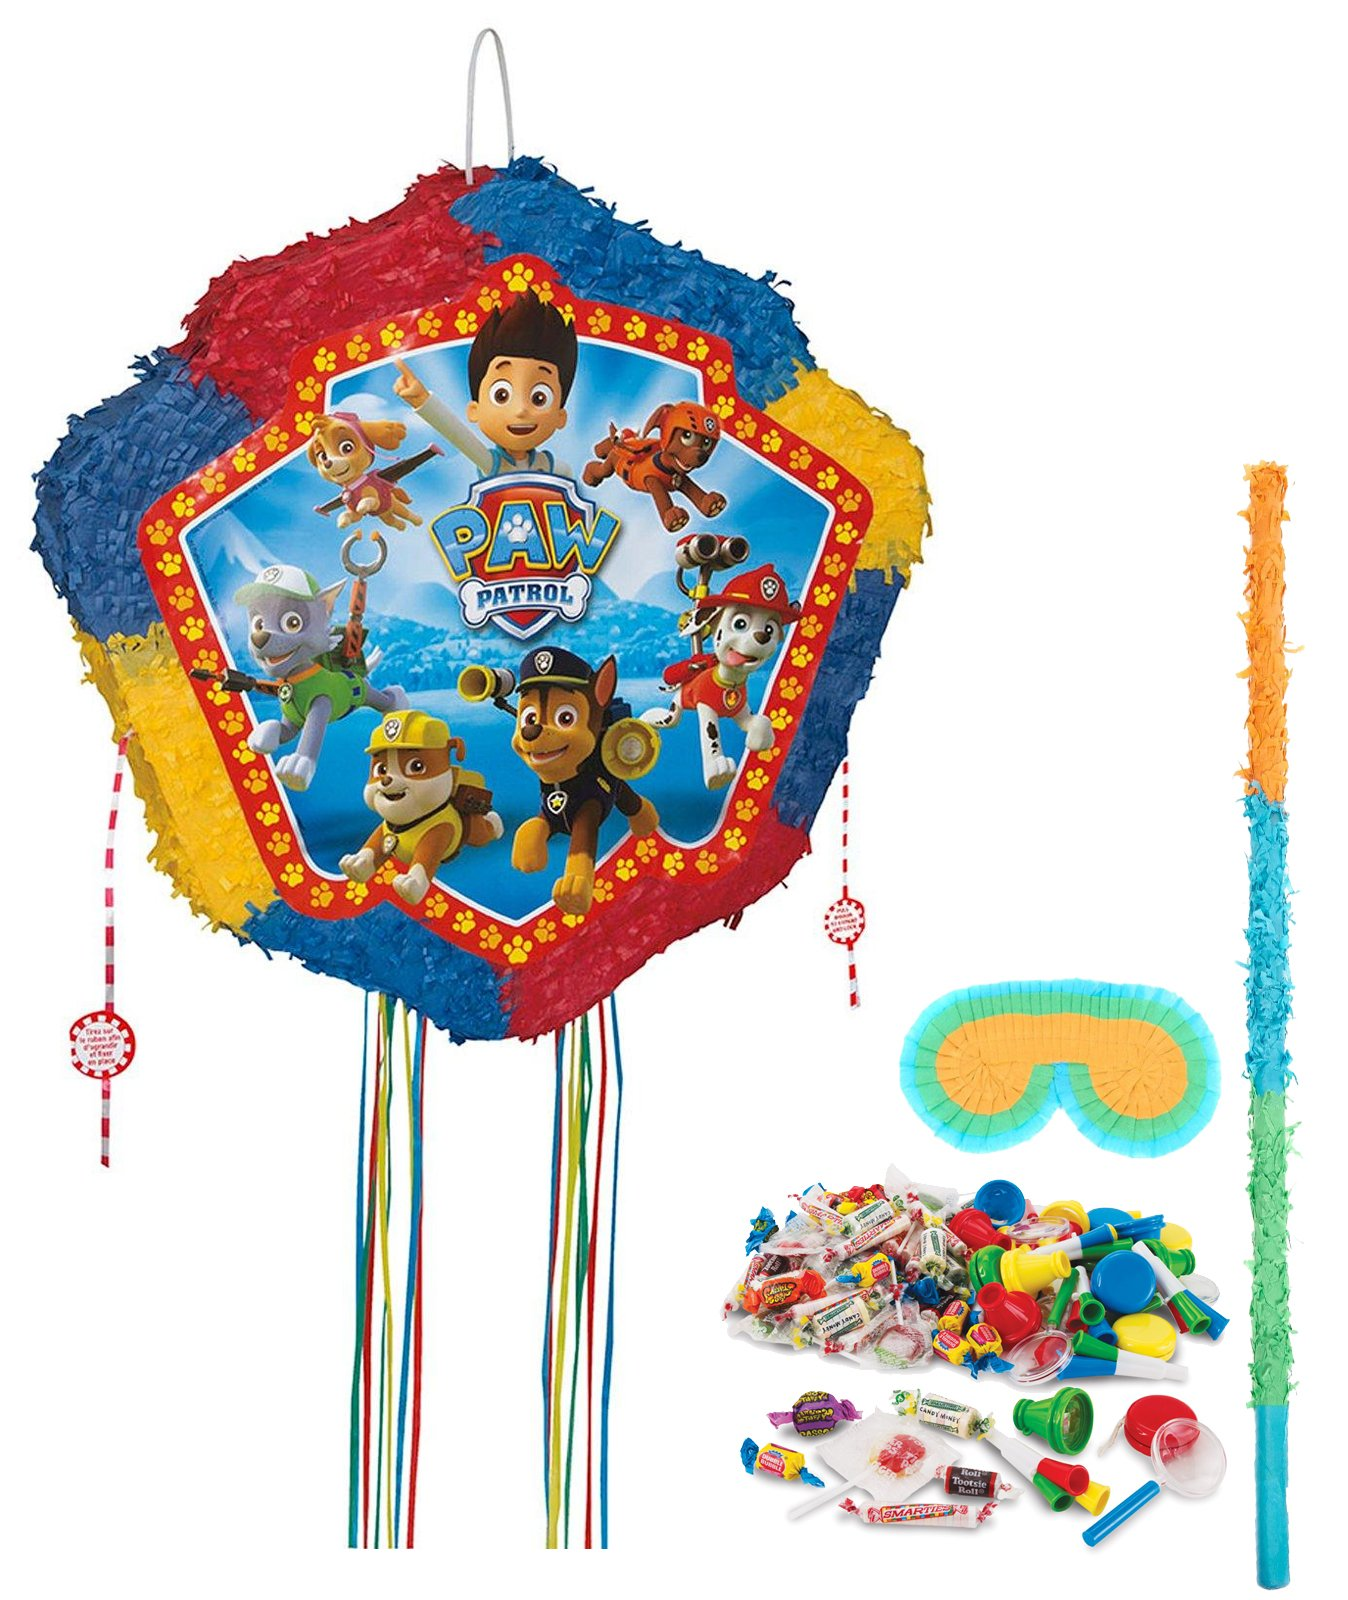 BirthdayExpress Paw Patrol Party Supplies - Pinata Kit by BirthdayExpress